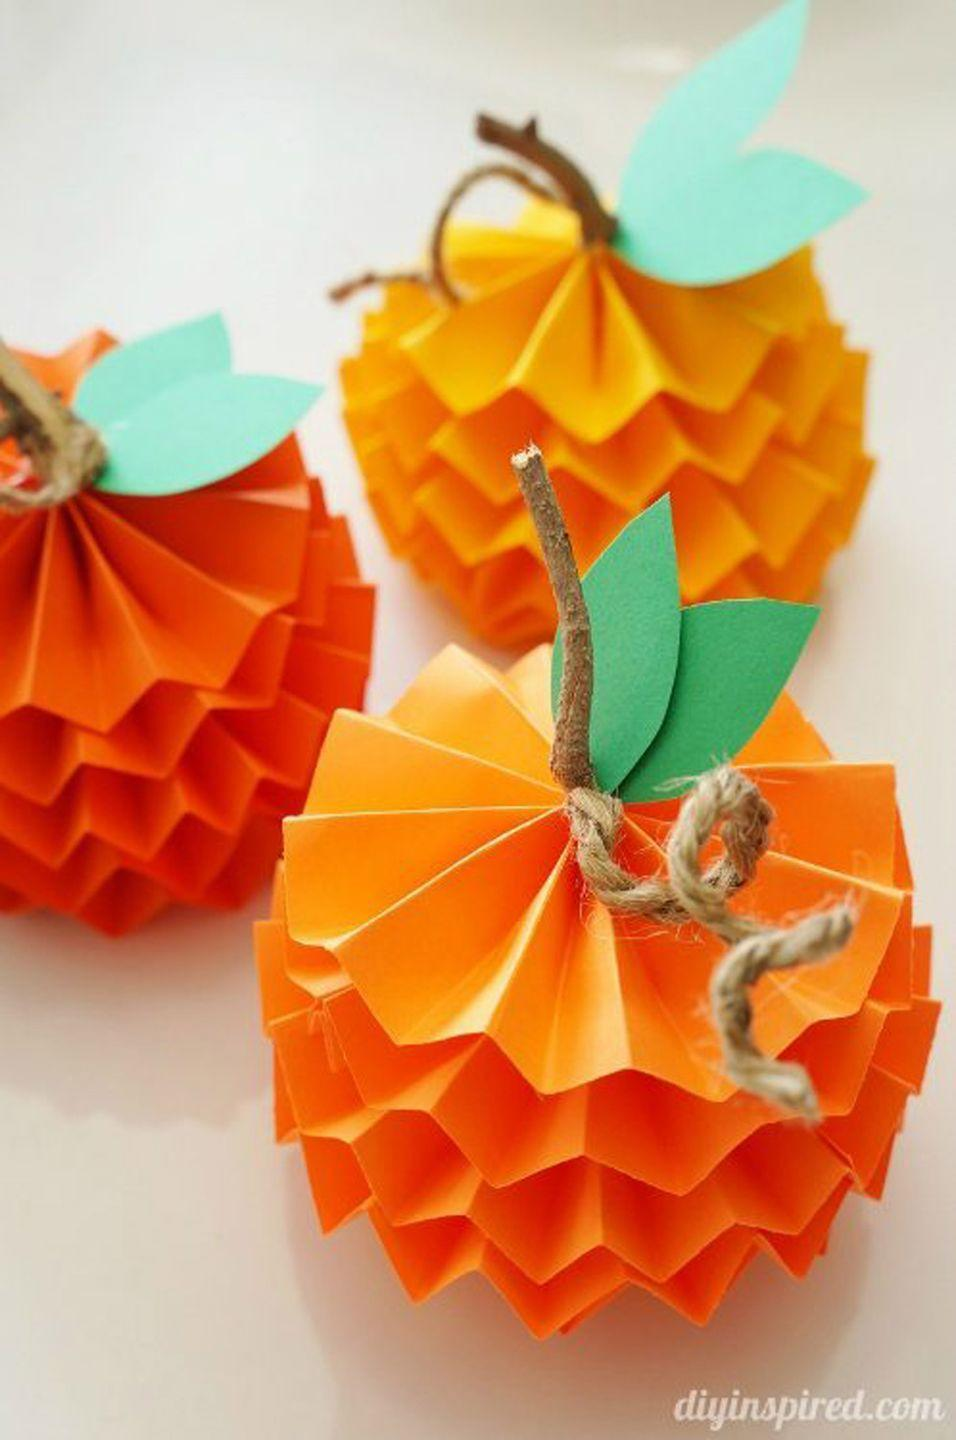 """<p>We think these paper pumpkins would look lovely on any dining table as a whimsical alternative to a typical floral centerpiece. Place them lengthwise along a burlap runner, or gather several together in a glass bowl in the middle of the table.</p><p><strong>Get the tutorial at <a href=""""https://www.diyinspired.com/how-to-make-paper-pumpkins-for-fall/"""" rel=""""nofollow noopener"""" target=""""_blank"""" data-ylk=""""slk:DIY Inspired"""" class=""""link rapid-noclick-resp"""">DIY Inspired</a>.</strong> </p>"""